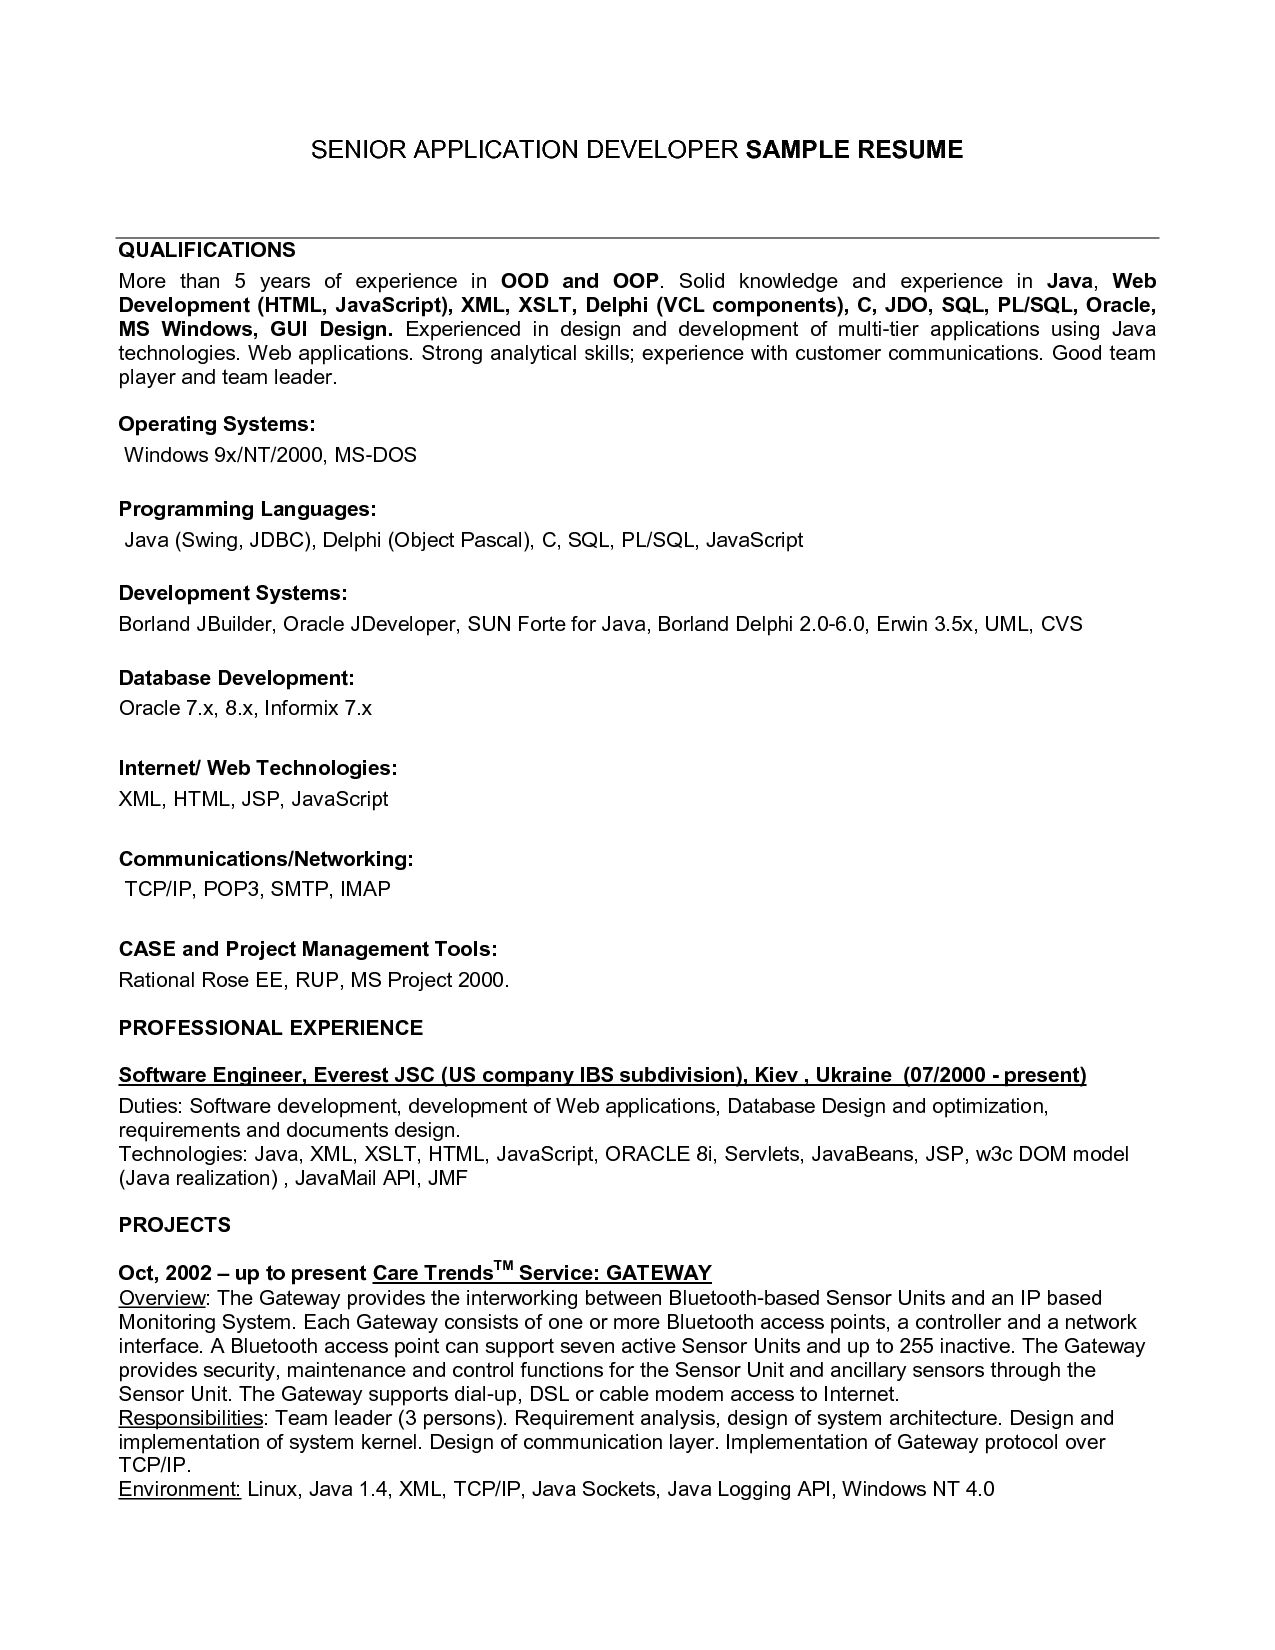 Resumes Examples Qualifications For A Resume Examples 7F8Ea3A2A The Most Resume